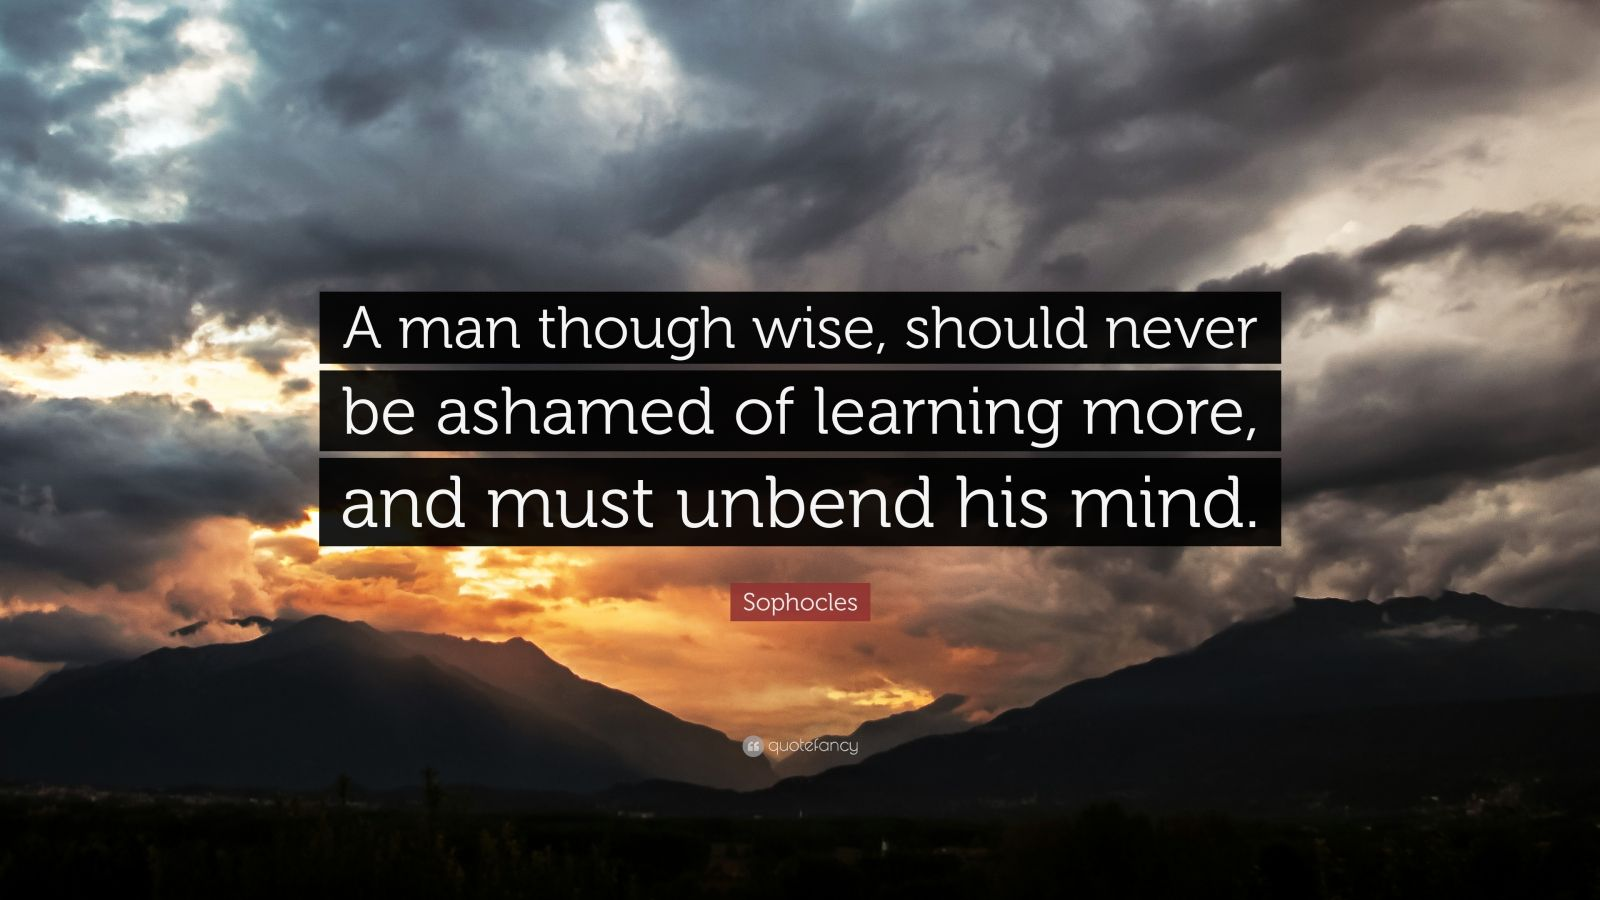 """Sophocles Quote: """"A man though wise, should never be ashamed of learning more, and must unbend his mind."""""""